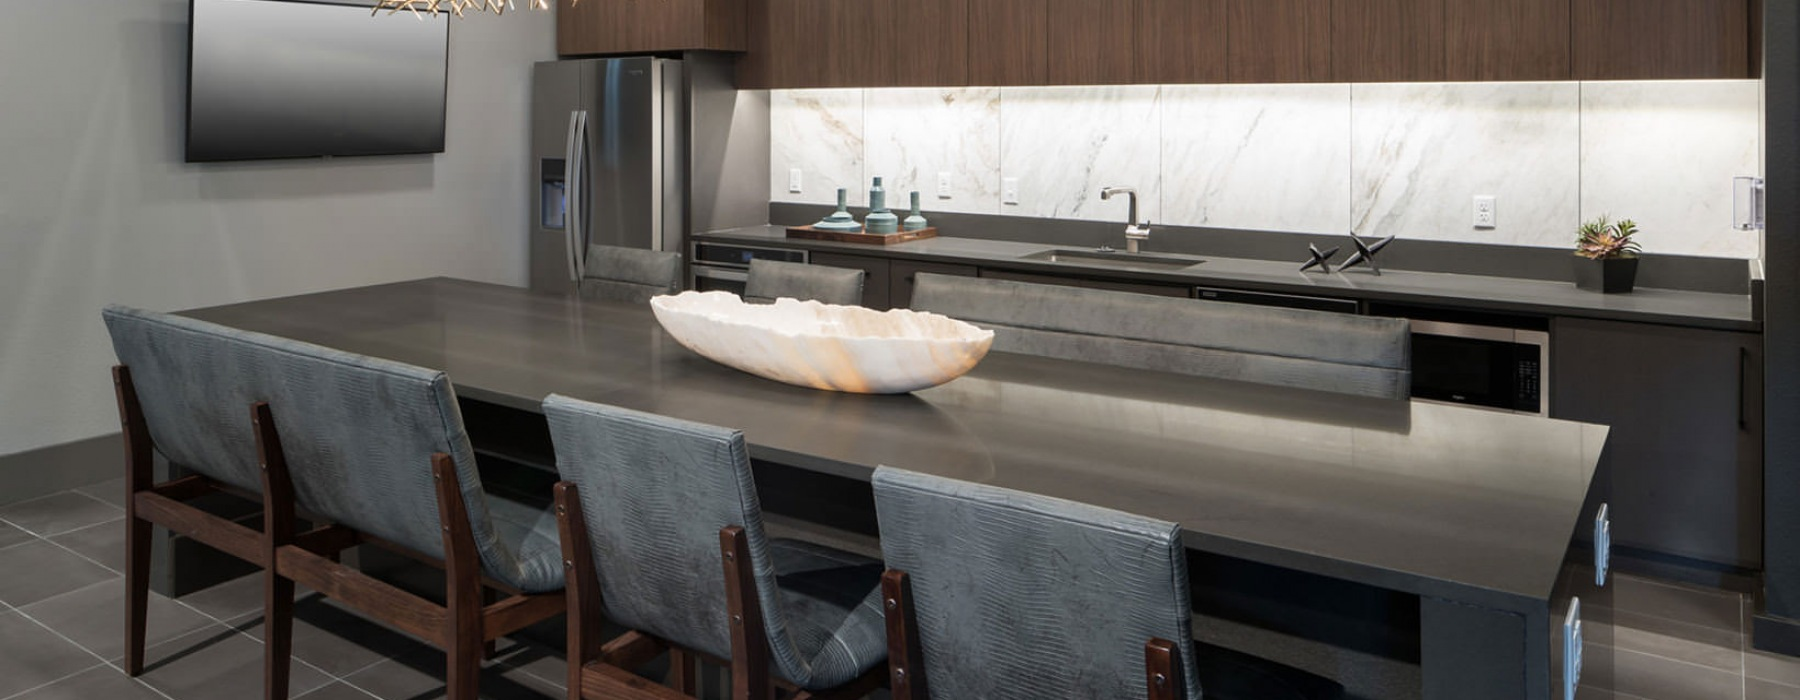 stylized light fixture hangs over long dining table in clubhouse kitchen